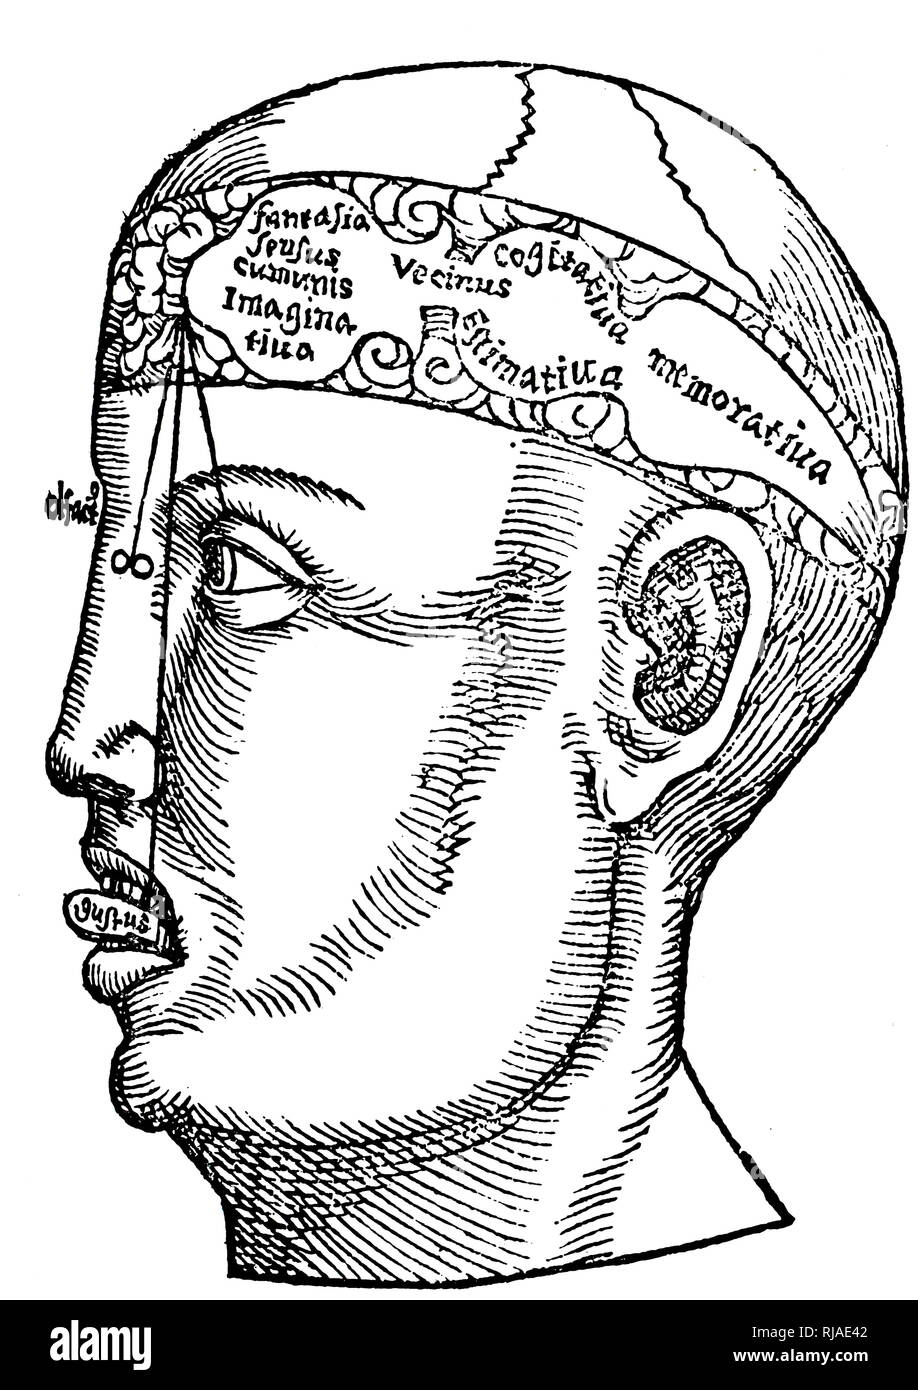 Illustration depicting a Renaissance anatomical drawing (16th century; German. From Margarita Philosophica; 1503 by Reisch. Shows the ventricles and their relationship to the intellect. Gregor Reisch (born at Balingen in Württemberg, about 1467; died at Freiburg, Baden, 9 May 1525) was a German Carthusian humanist writer. He is best known for his compilation Margarita Philosophica - Stock Image